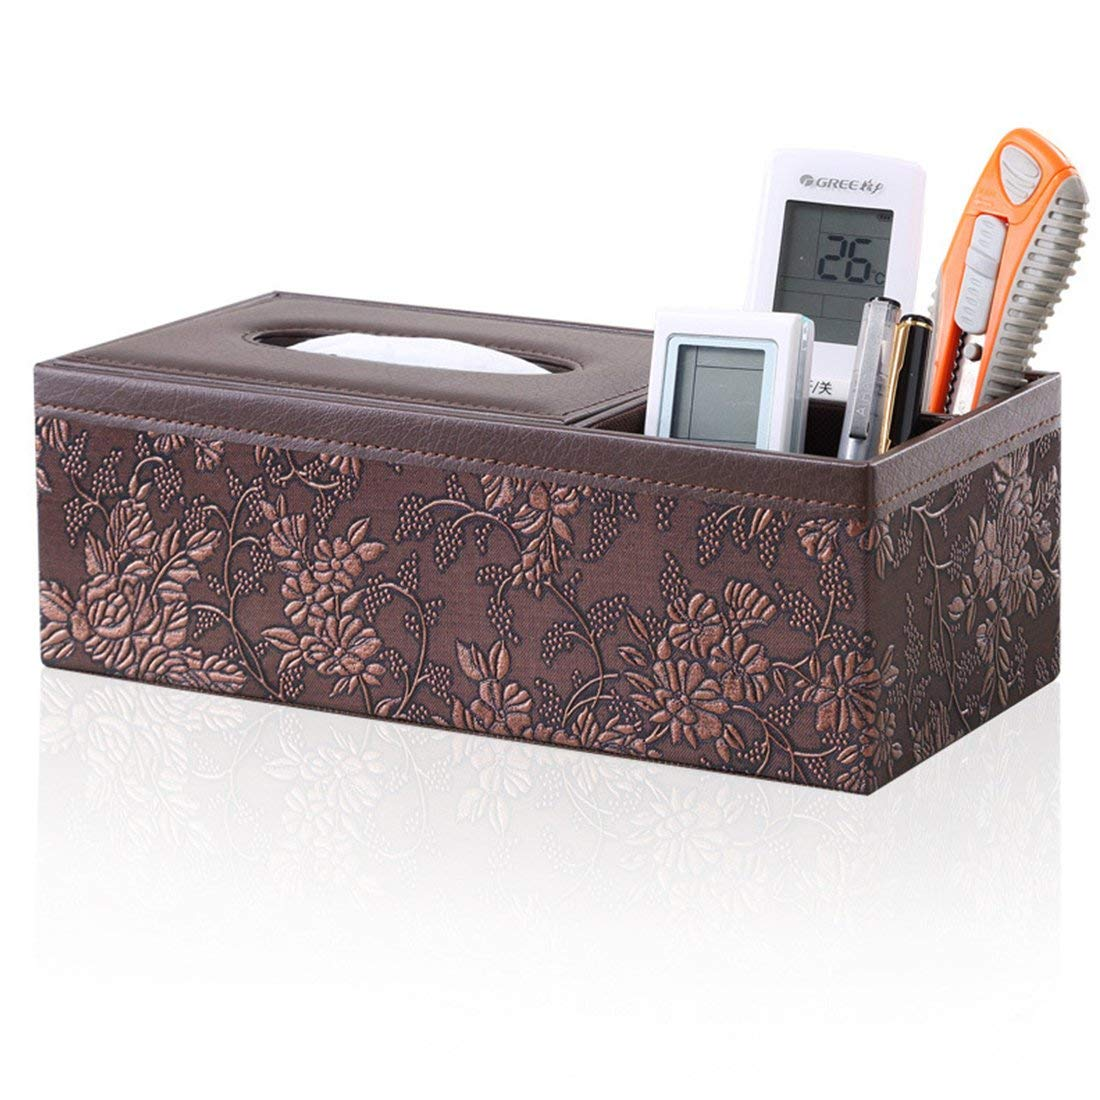 Zubita Tissue Box, Multi-Functional Tissue Napkin Paper Box PU Leather Wooden Fabrics Pens Pencils Phone Holder Tissue Cover Case for Home Office Desk Car Decoration Image Retro Carving (Brown)